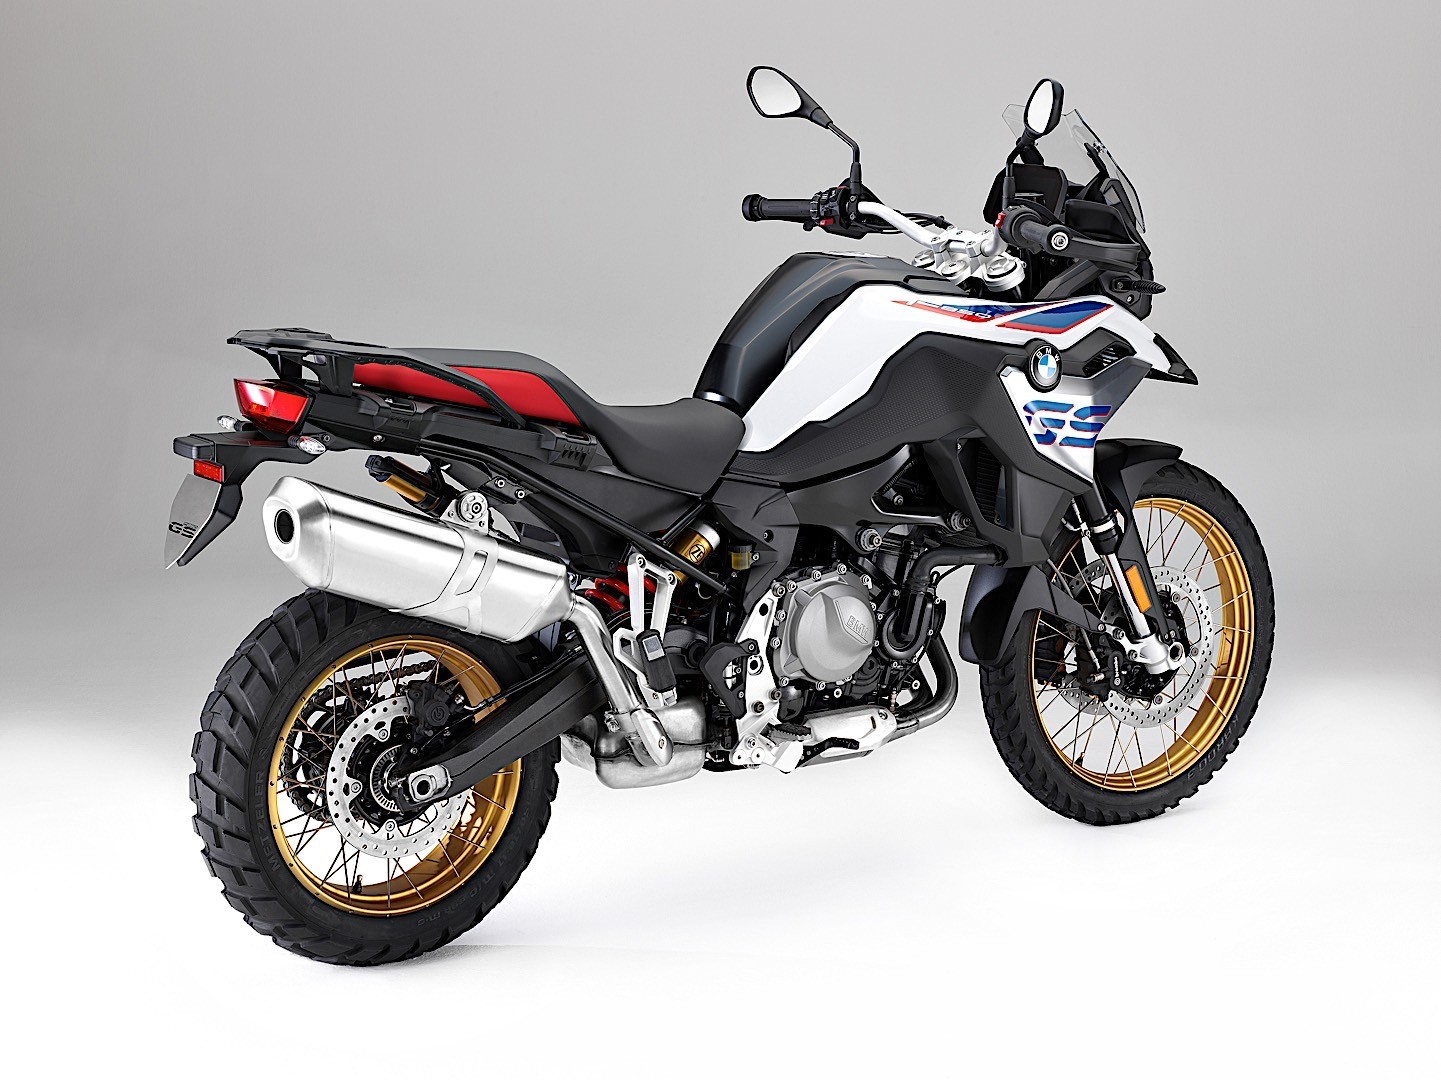 redesigned 2018 bmw f 750 gs and f 850 gs pop out at eicma autoevolution. Black Bedroom Furniture Sets. Home Design Ideas